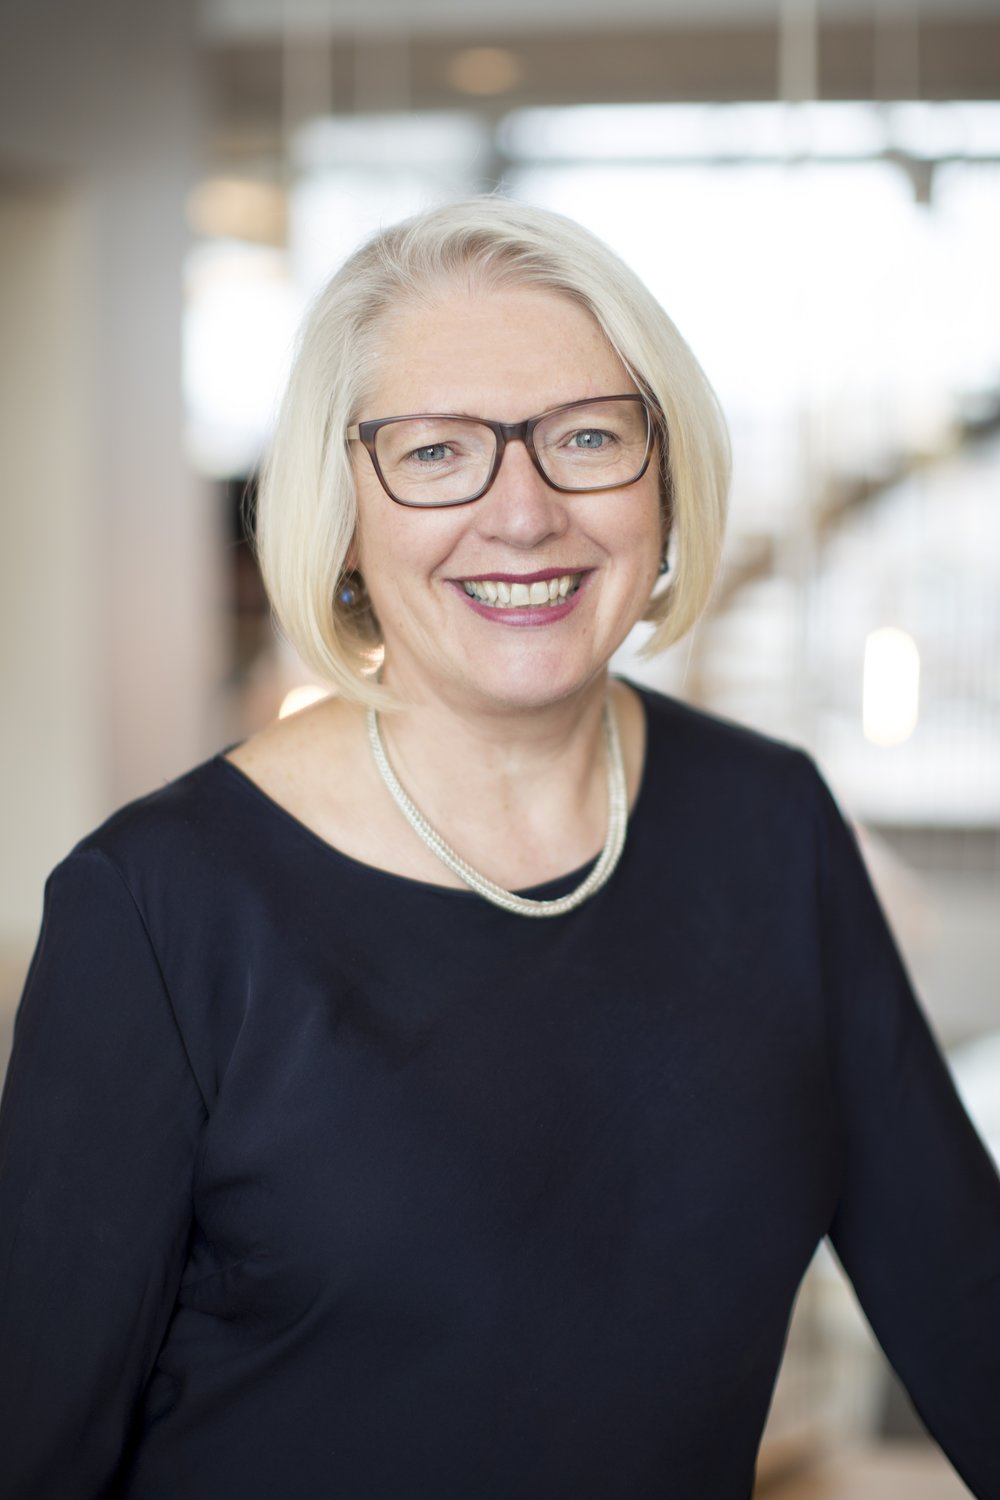 Hilde Solberg Holm, Head of Learning and Development, SopraSteria